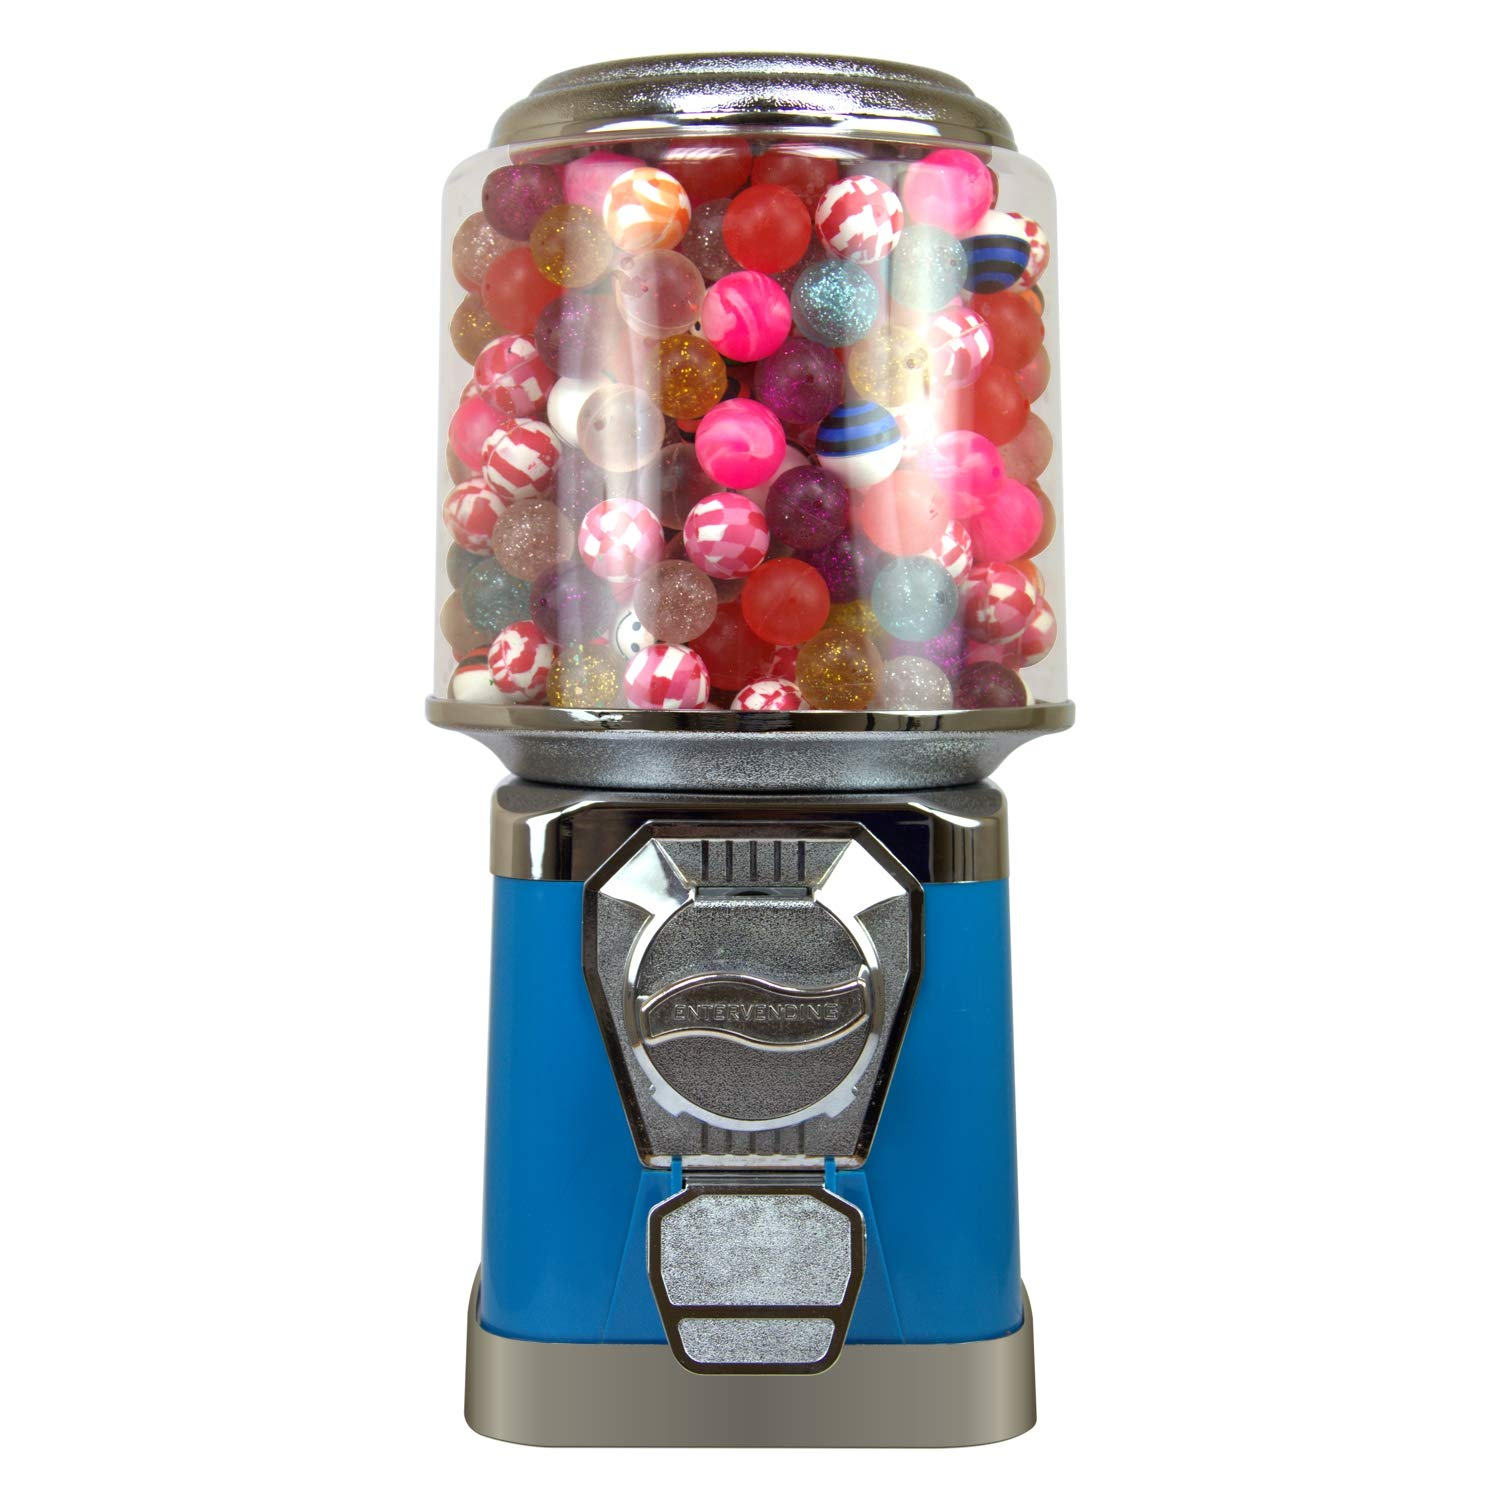 Gumball Machine for Kids - Blue Vending Machine with Cylinder Globe - Bubble Gum Machine for Kids - Home Vending Machine - Coin Gumball Machine - Bubblegum Machine - Gum Ball Machine Without Stand